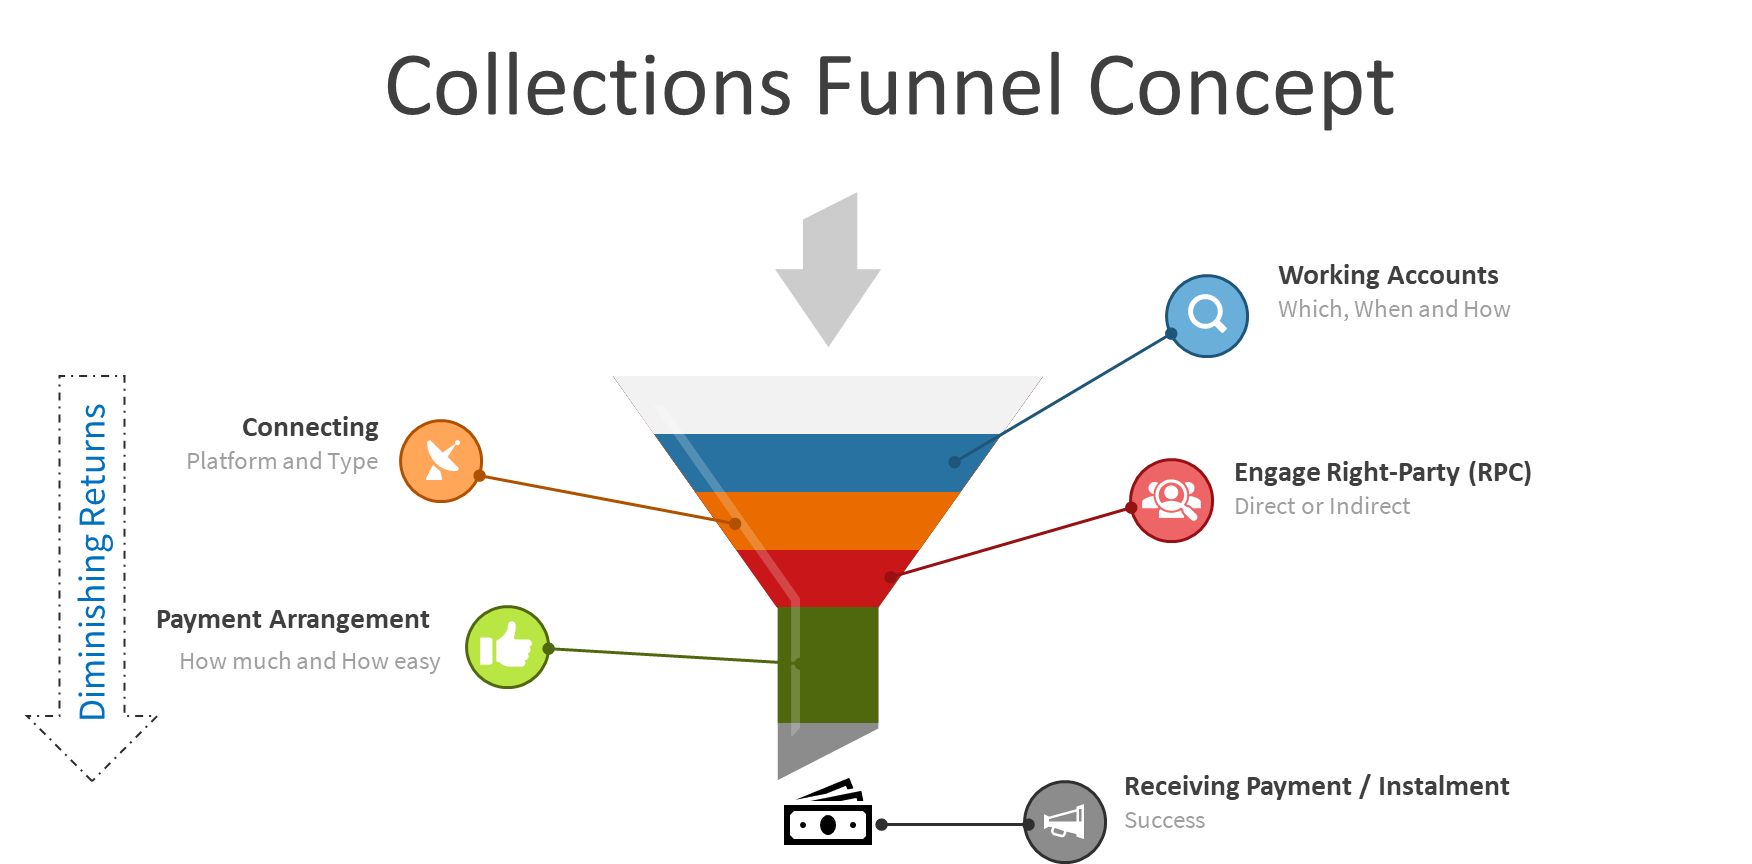 A funnel  describing the Collections funnel concept